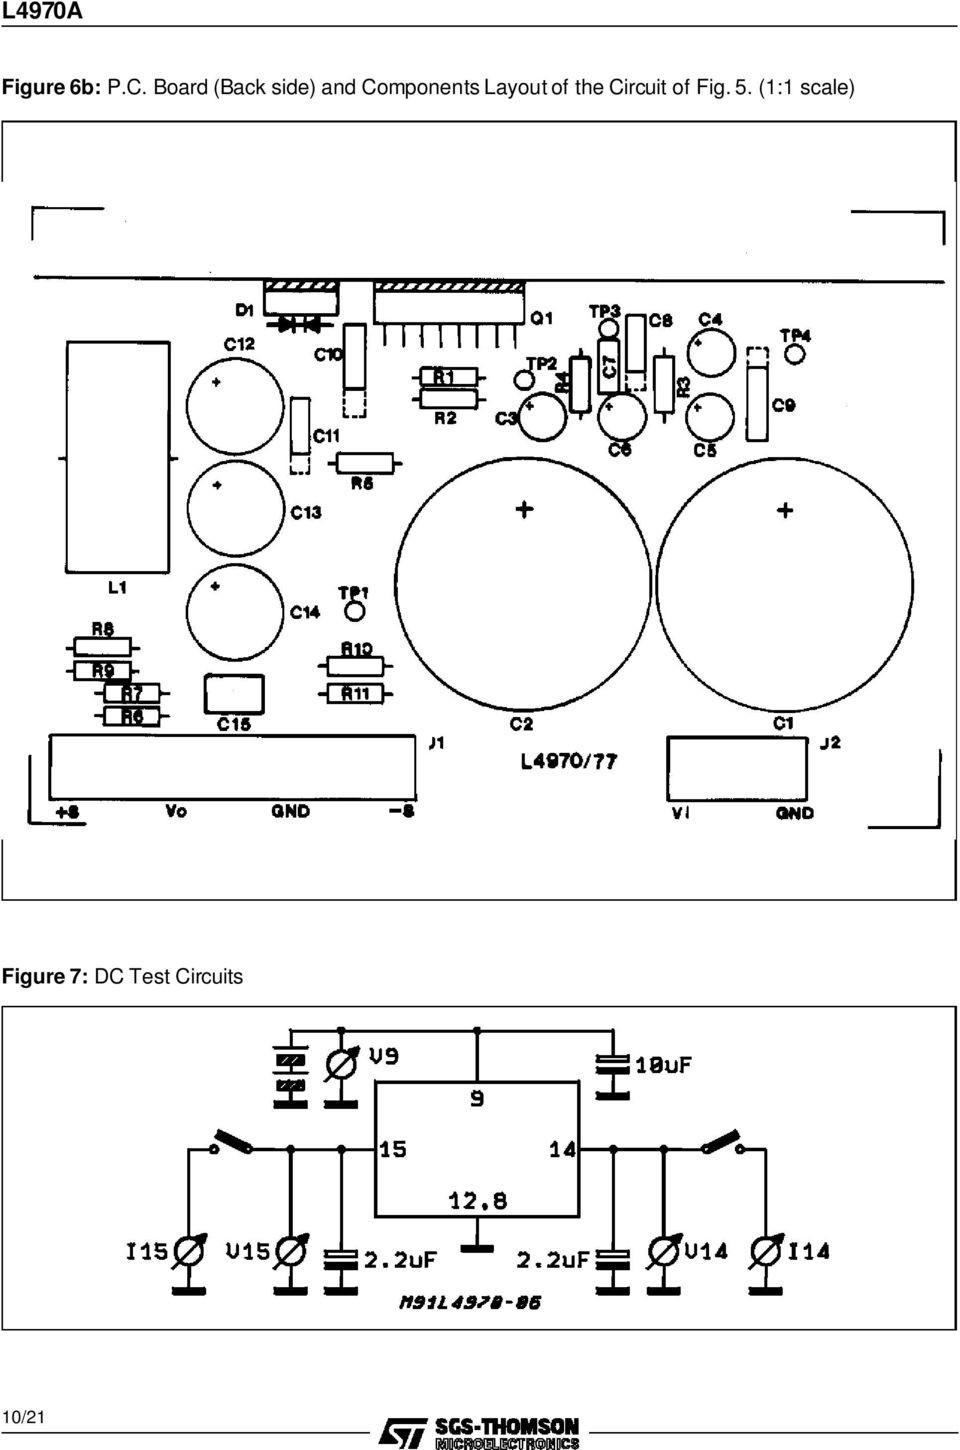 Components Layout of the